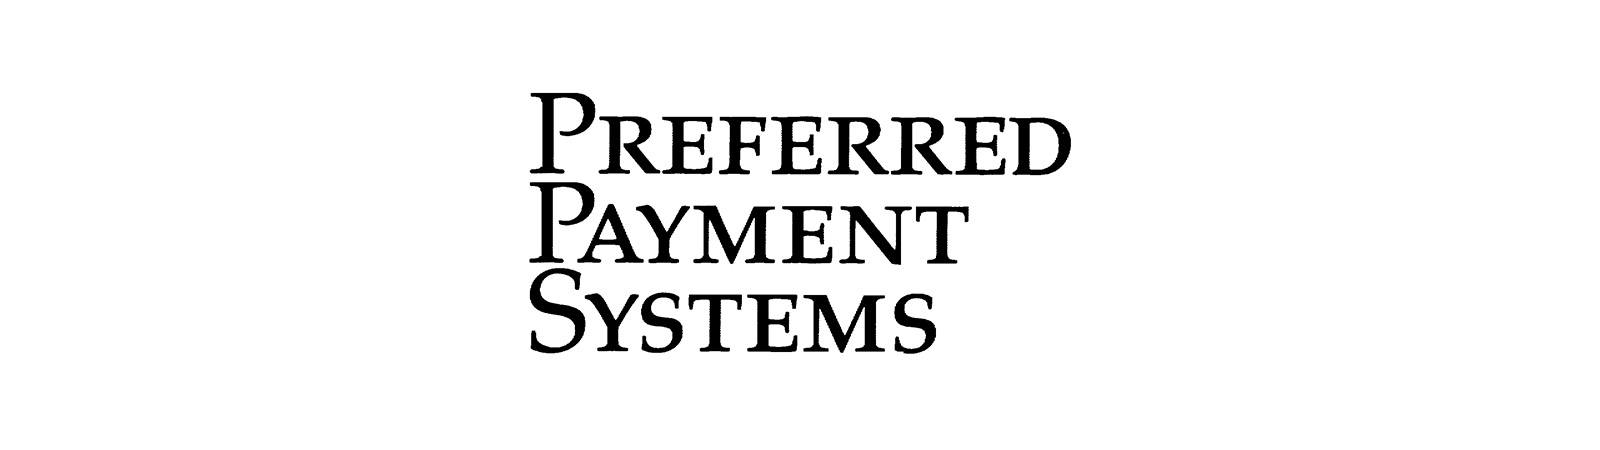 Preferred Payment Systems logo image